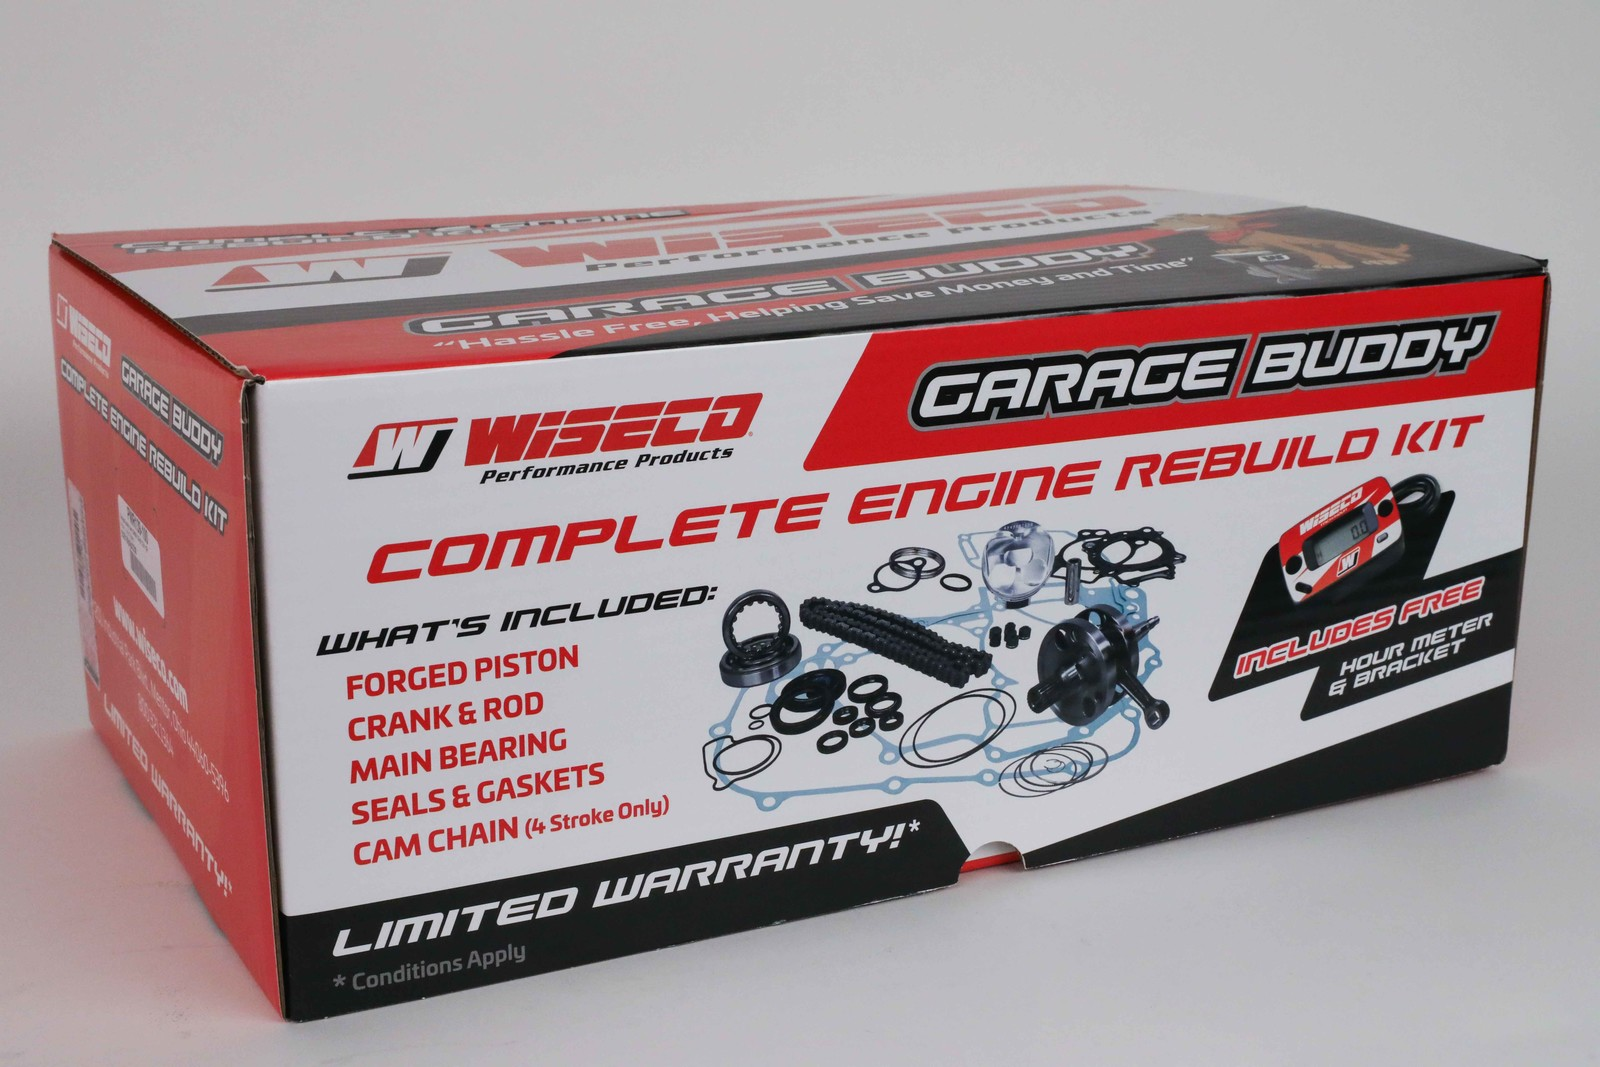 Wiseco Releases New Garage Buddy Engine Rebuild Kits